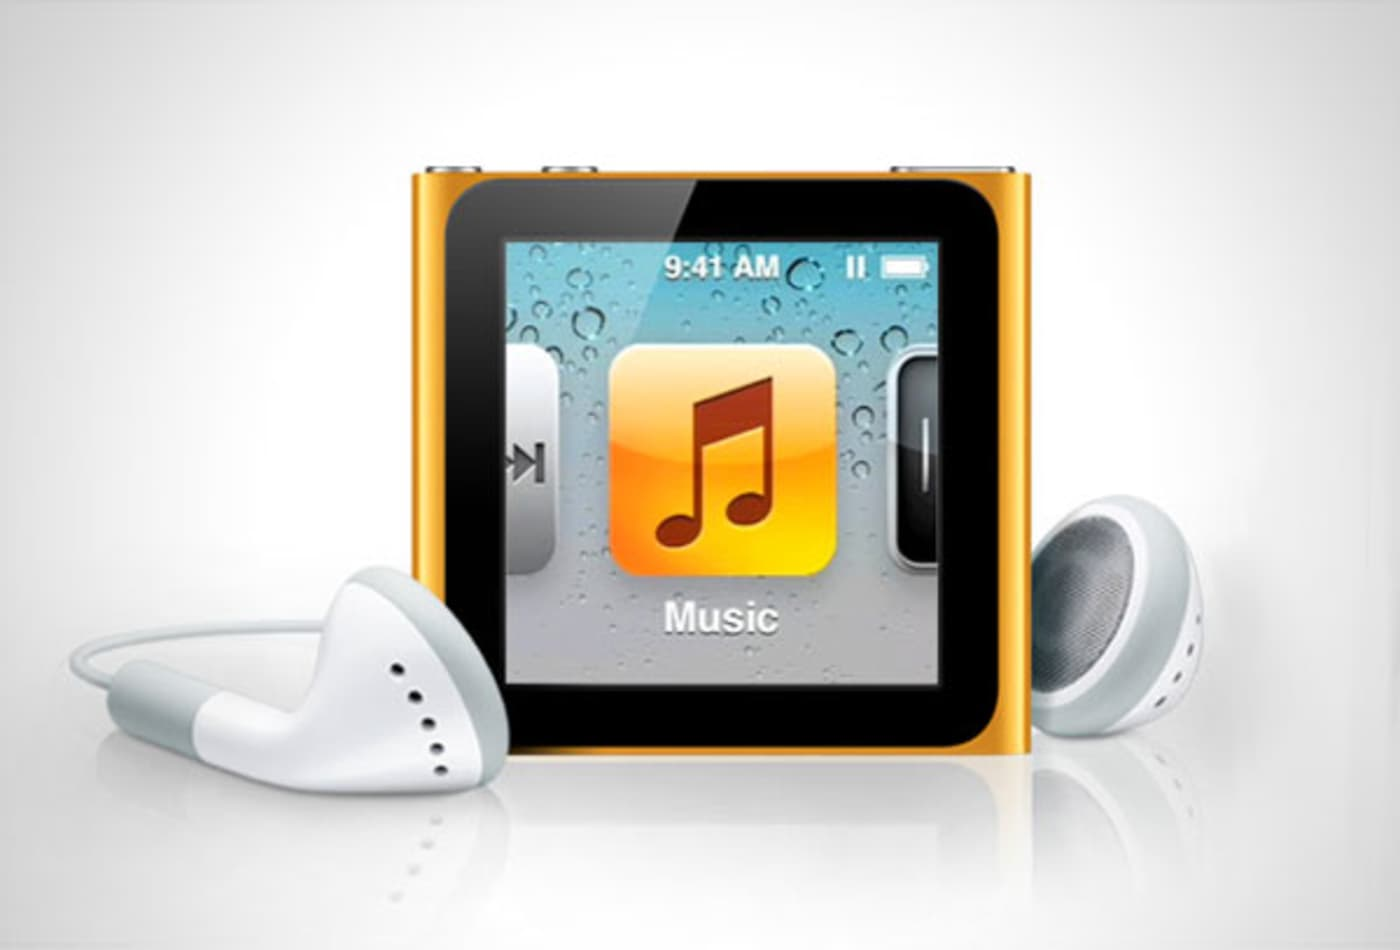 iPod-Inventions-Killed-Businesses-SS.jpg